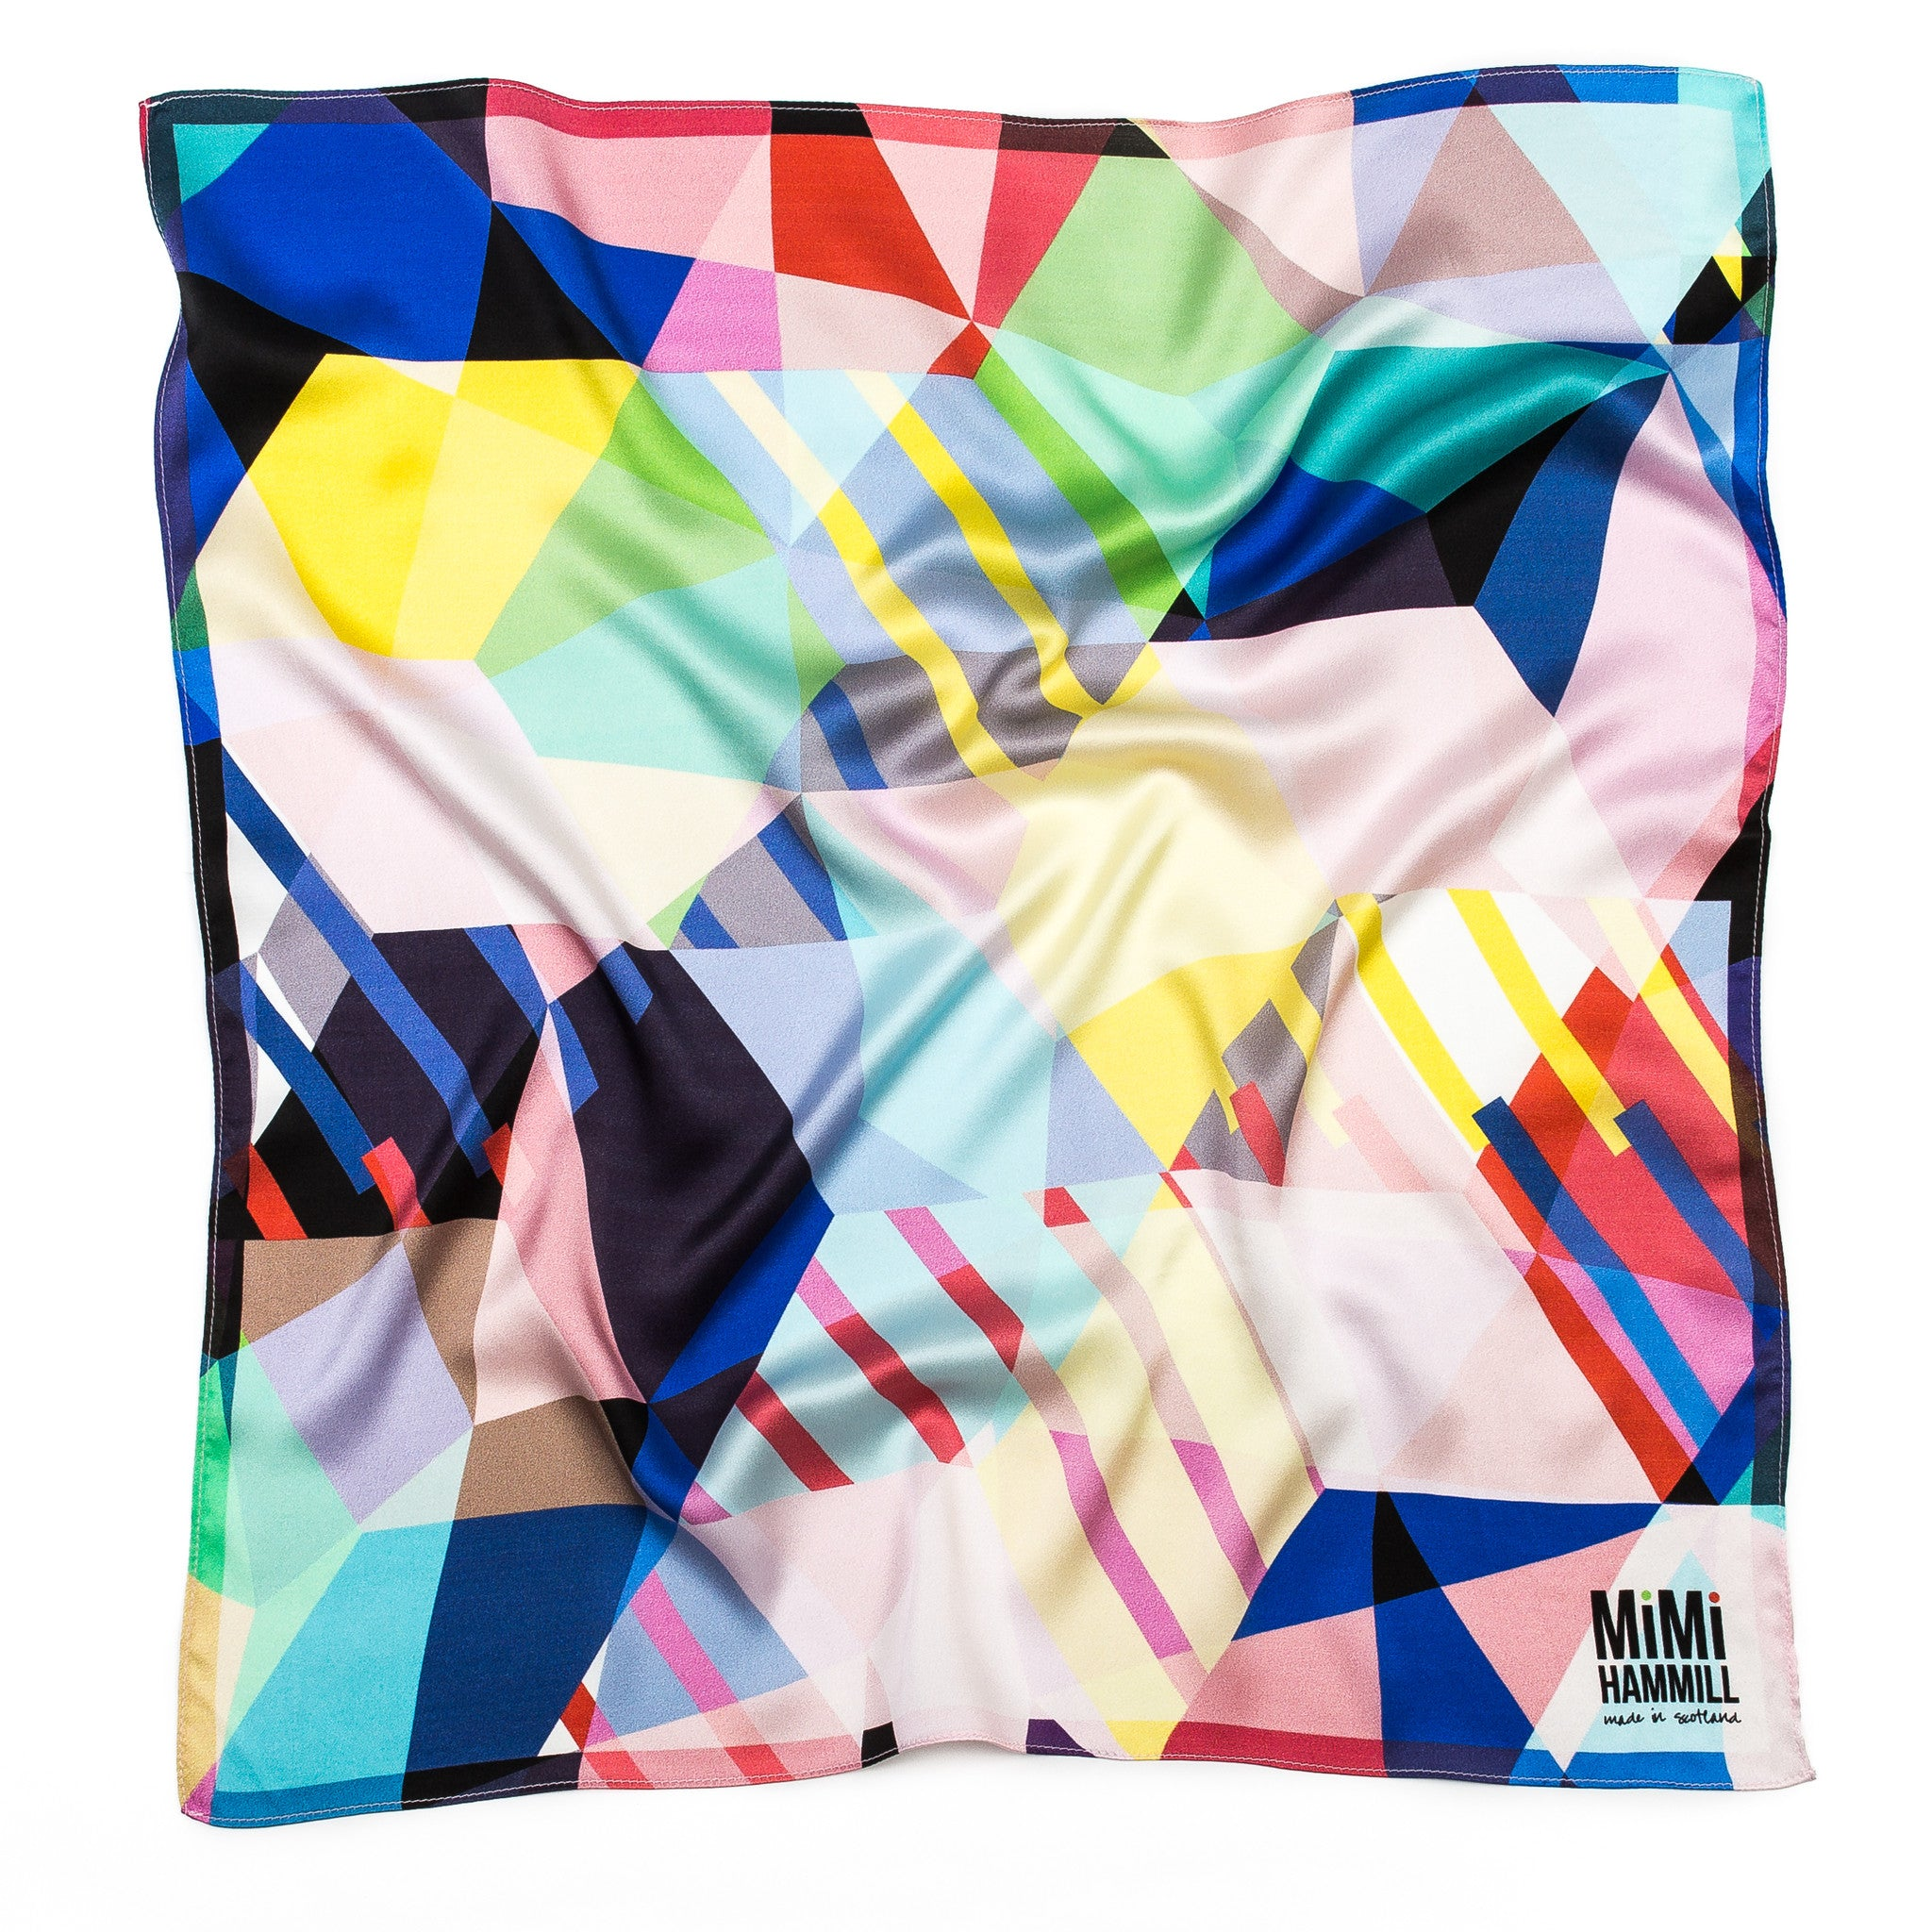 Silk scarf designed by Mimi Hammill. Colourful, geometric print. ARTPOP in the Not The Kind gift shop.